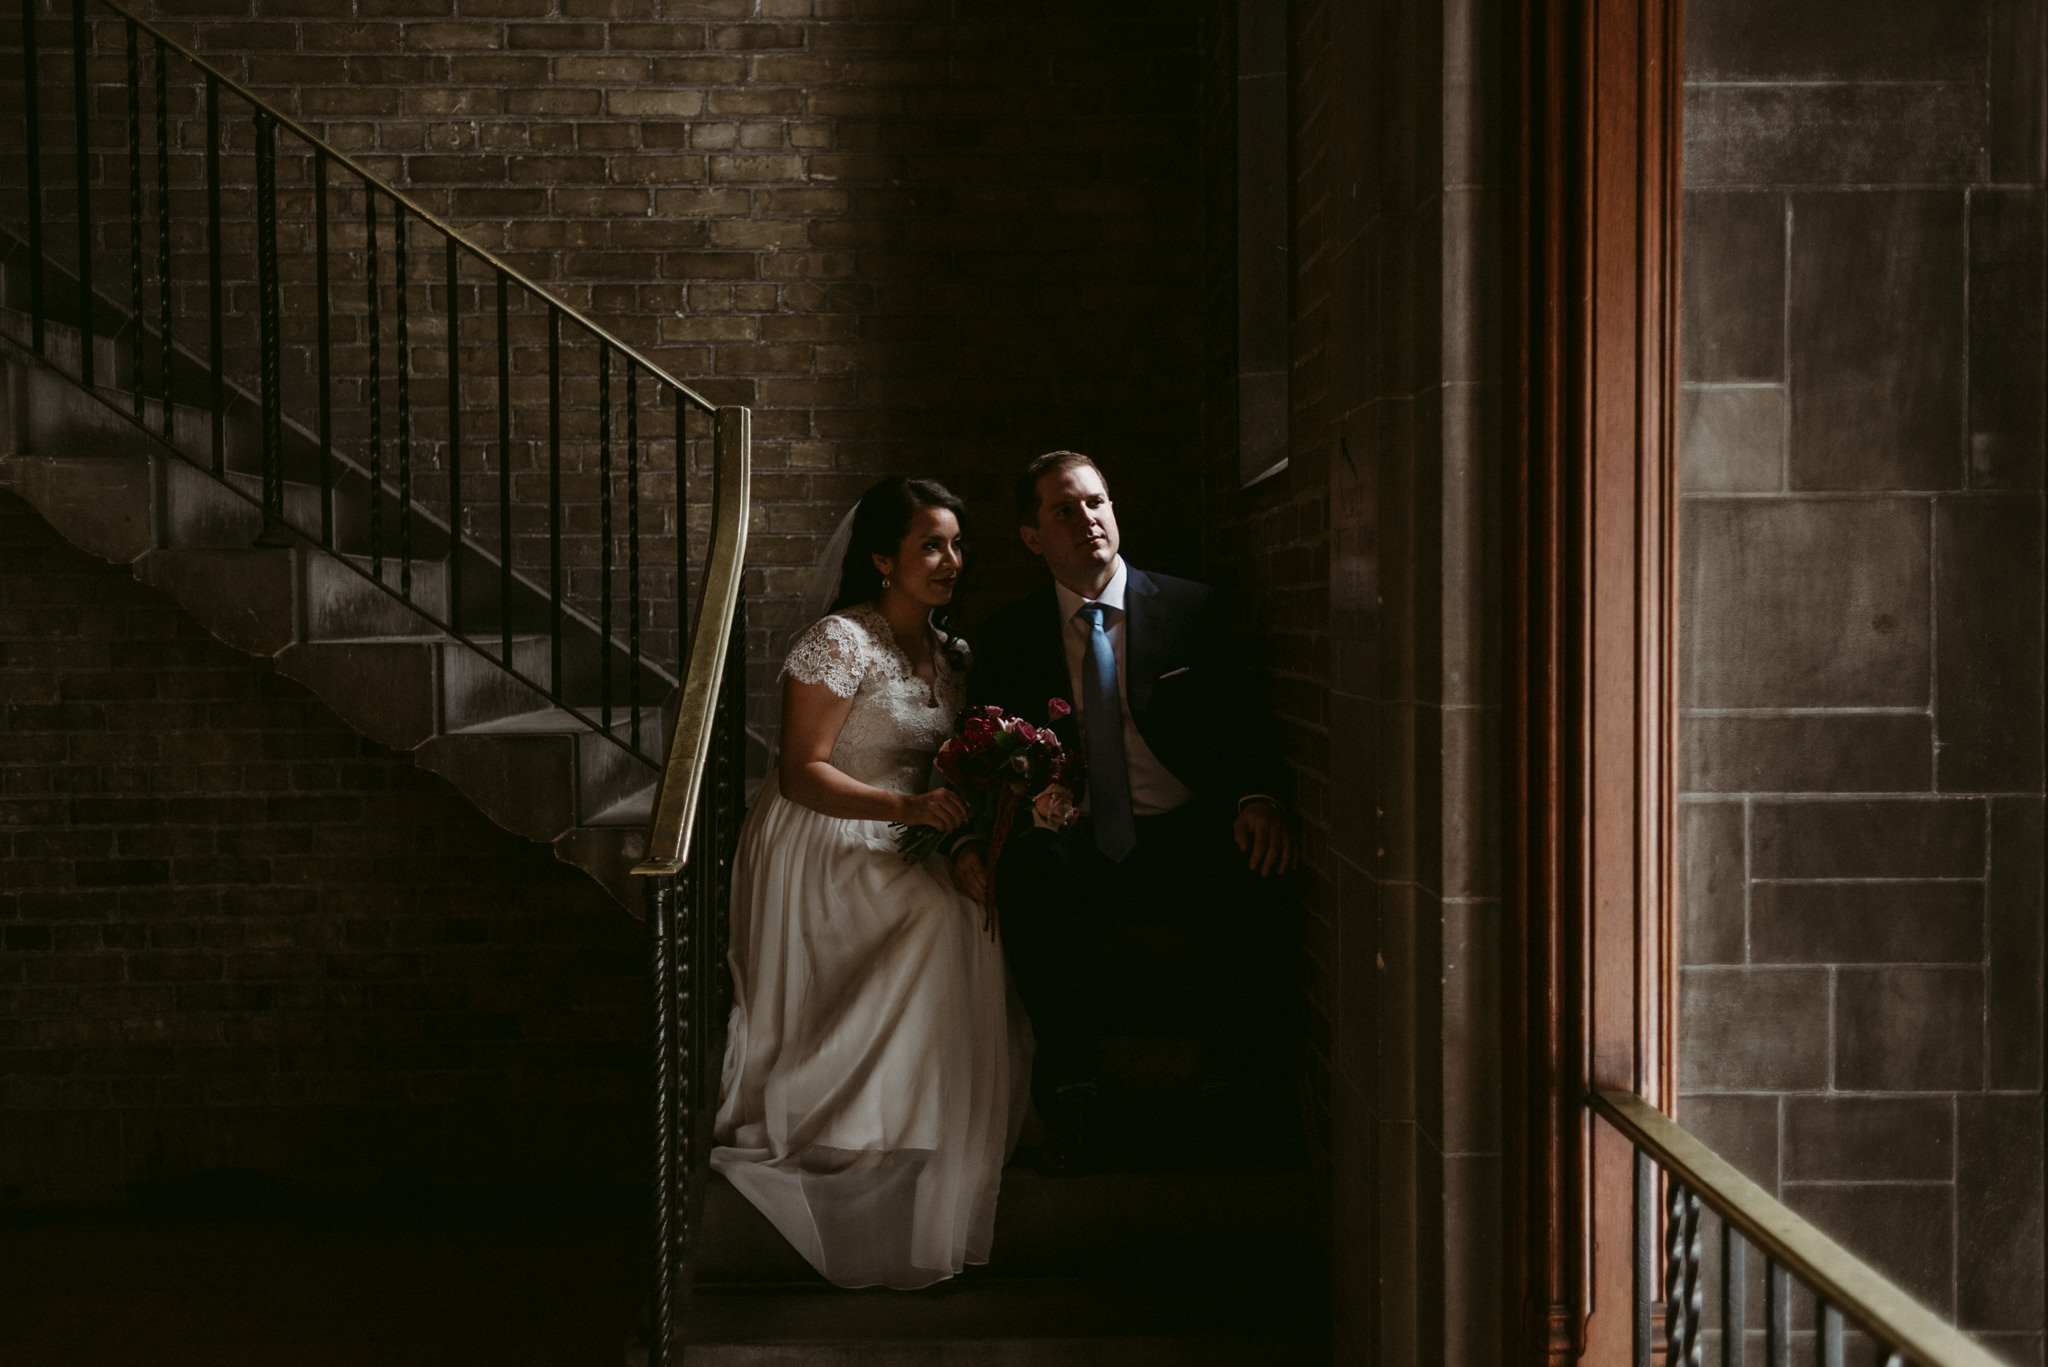 Wedding portraits at Hart House wedding